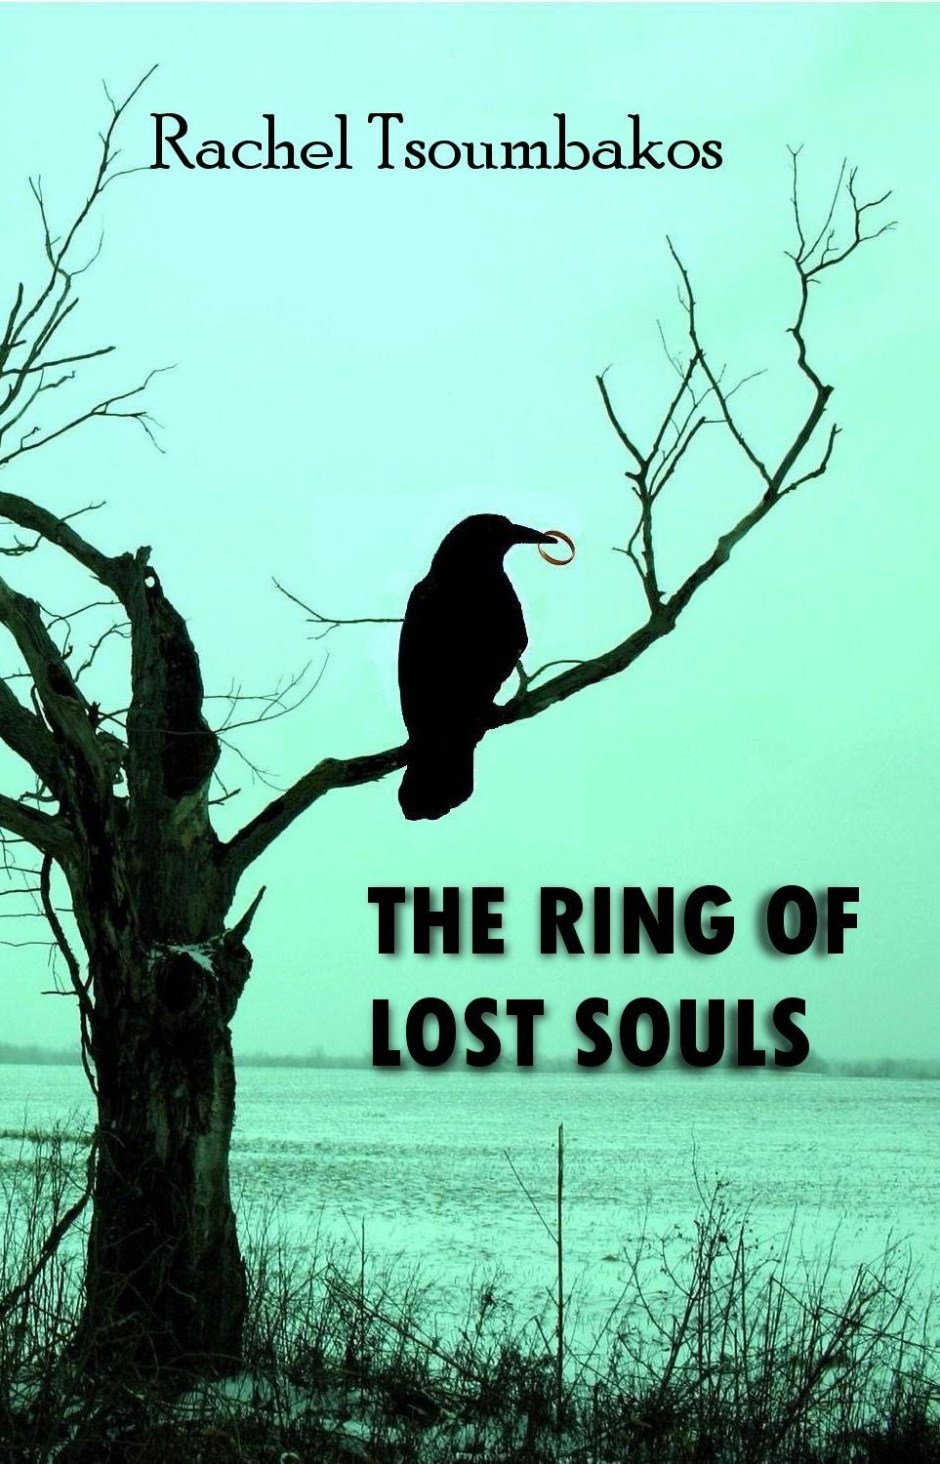 The Ring of Lost Souls by Rachel Tsoumbakos